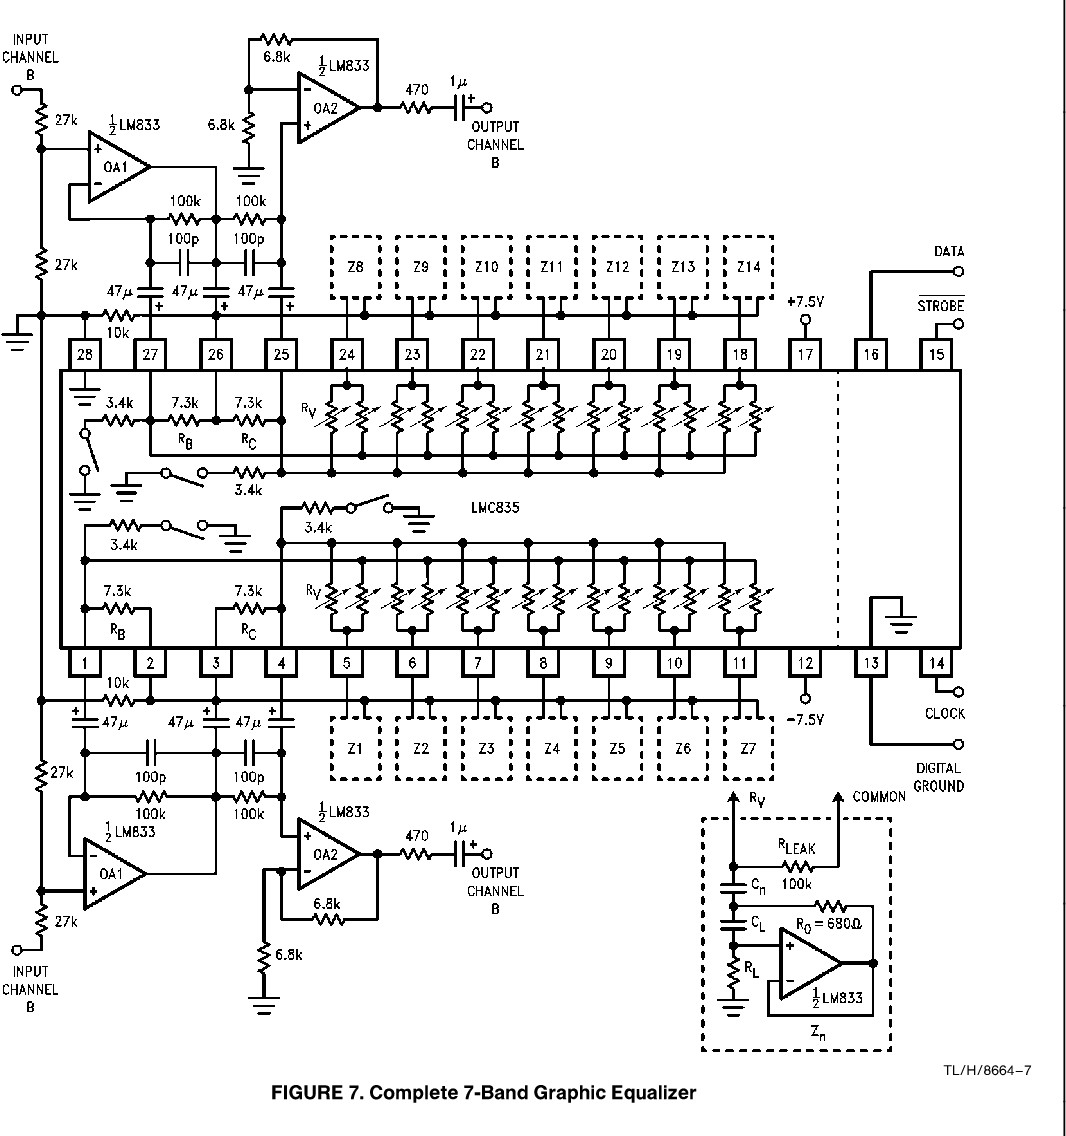 designing with the lmc835 digital controlled graphic